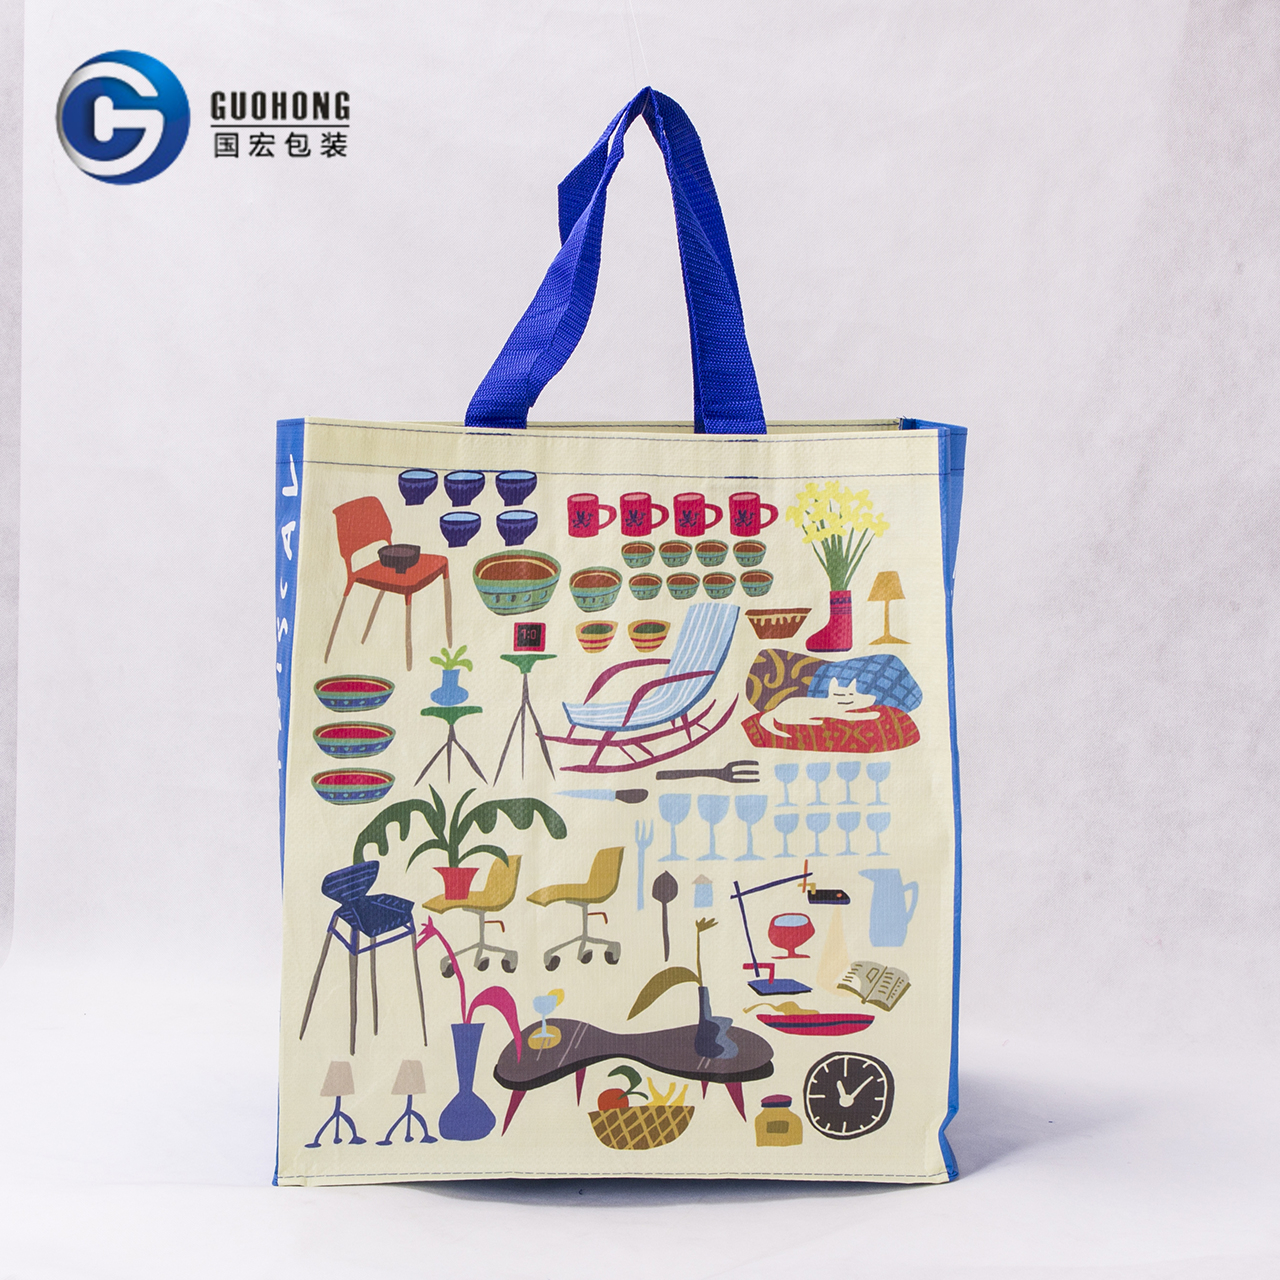 High Quality Promotional Laminated Pp Woven Bag /pp Environmental Shopping Bag/handled Factory Pp Woven Shopping Bag